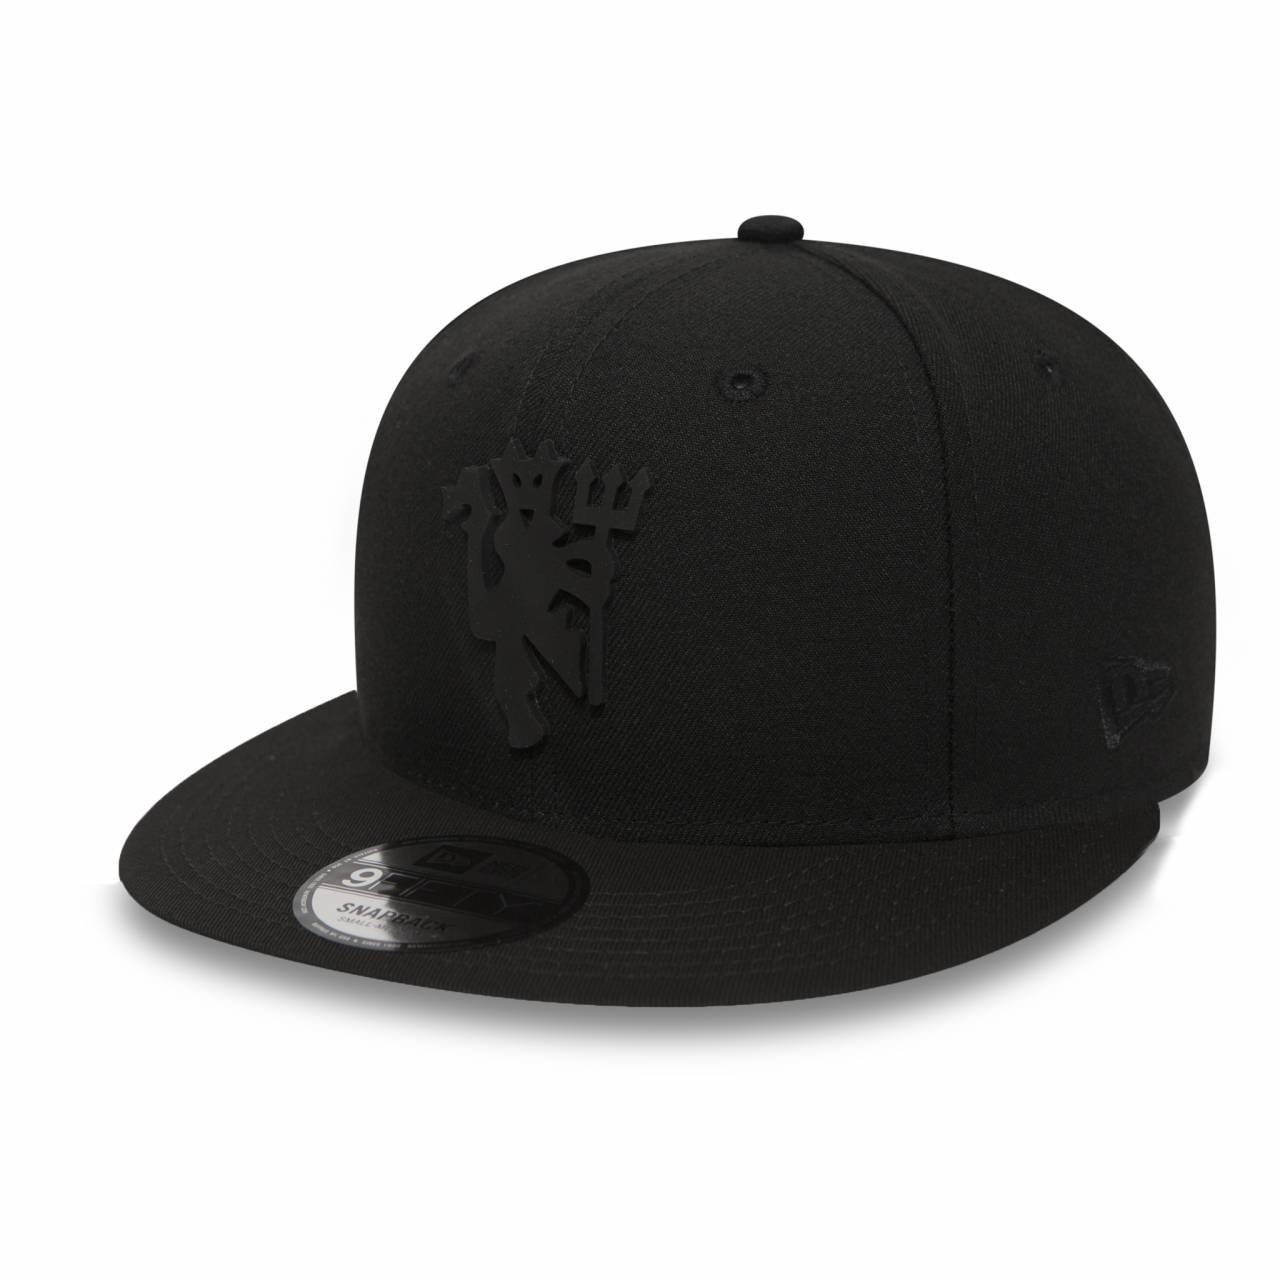 11213203 9FIFTY NEW ERA MANCHESTER UNITED BLACK/BLACK SNAPBACK